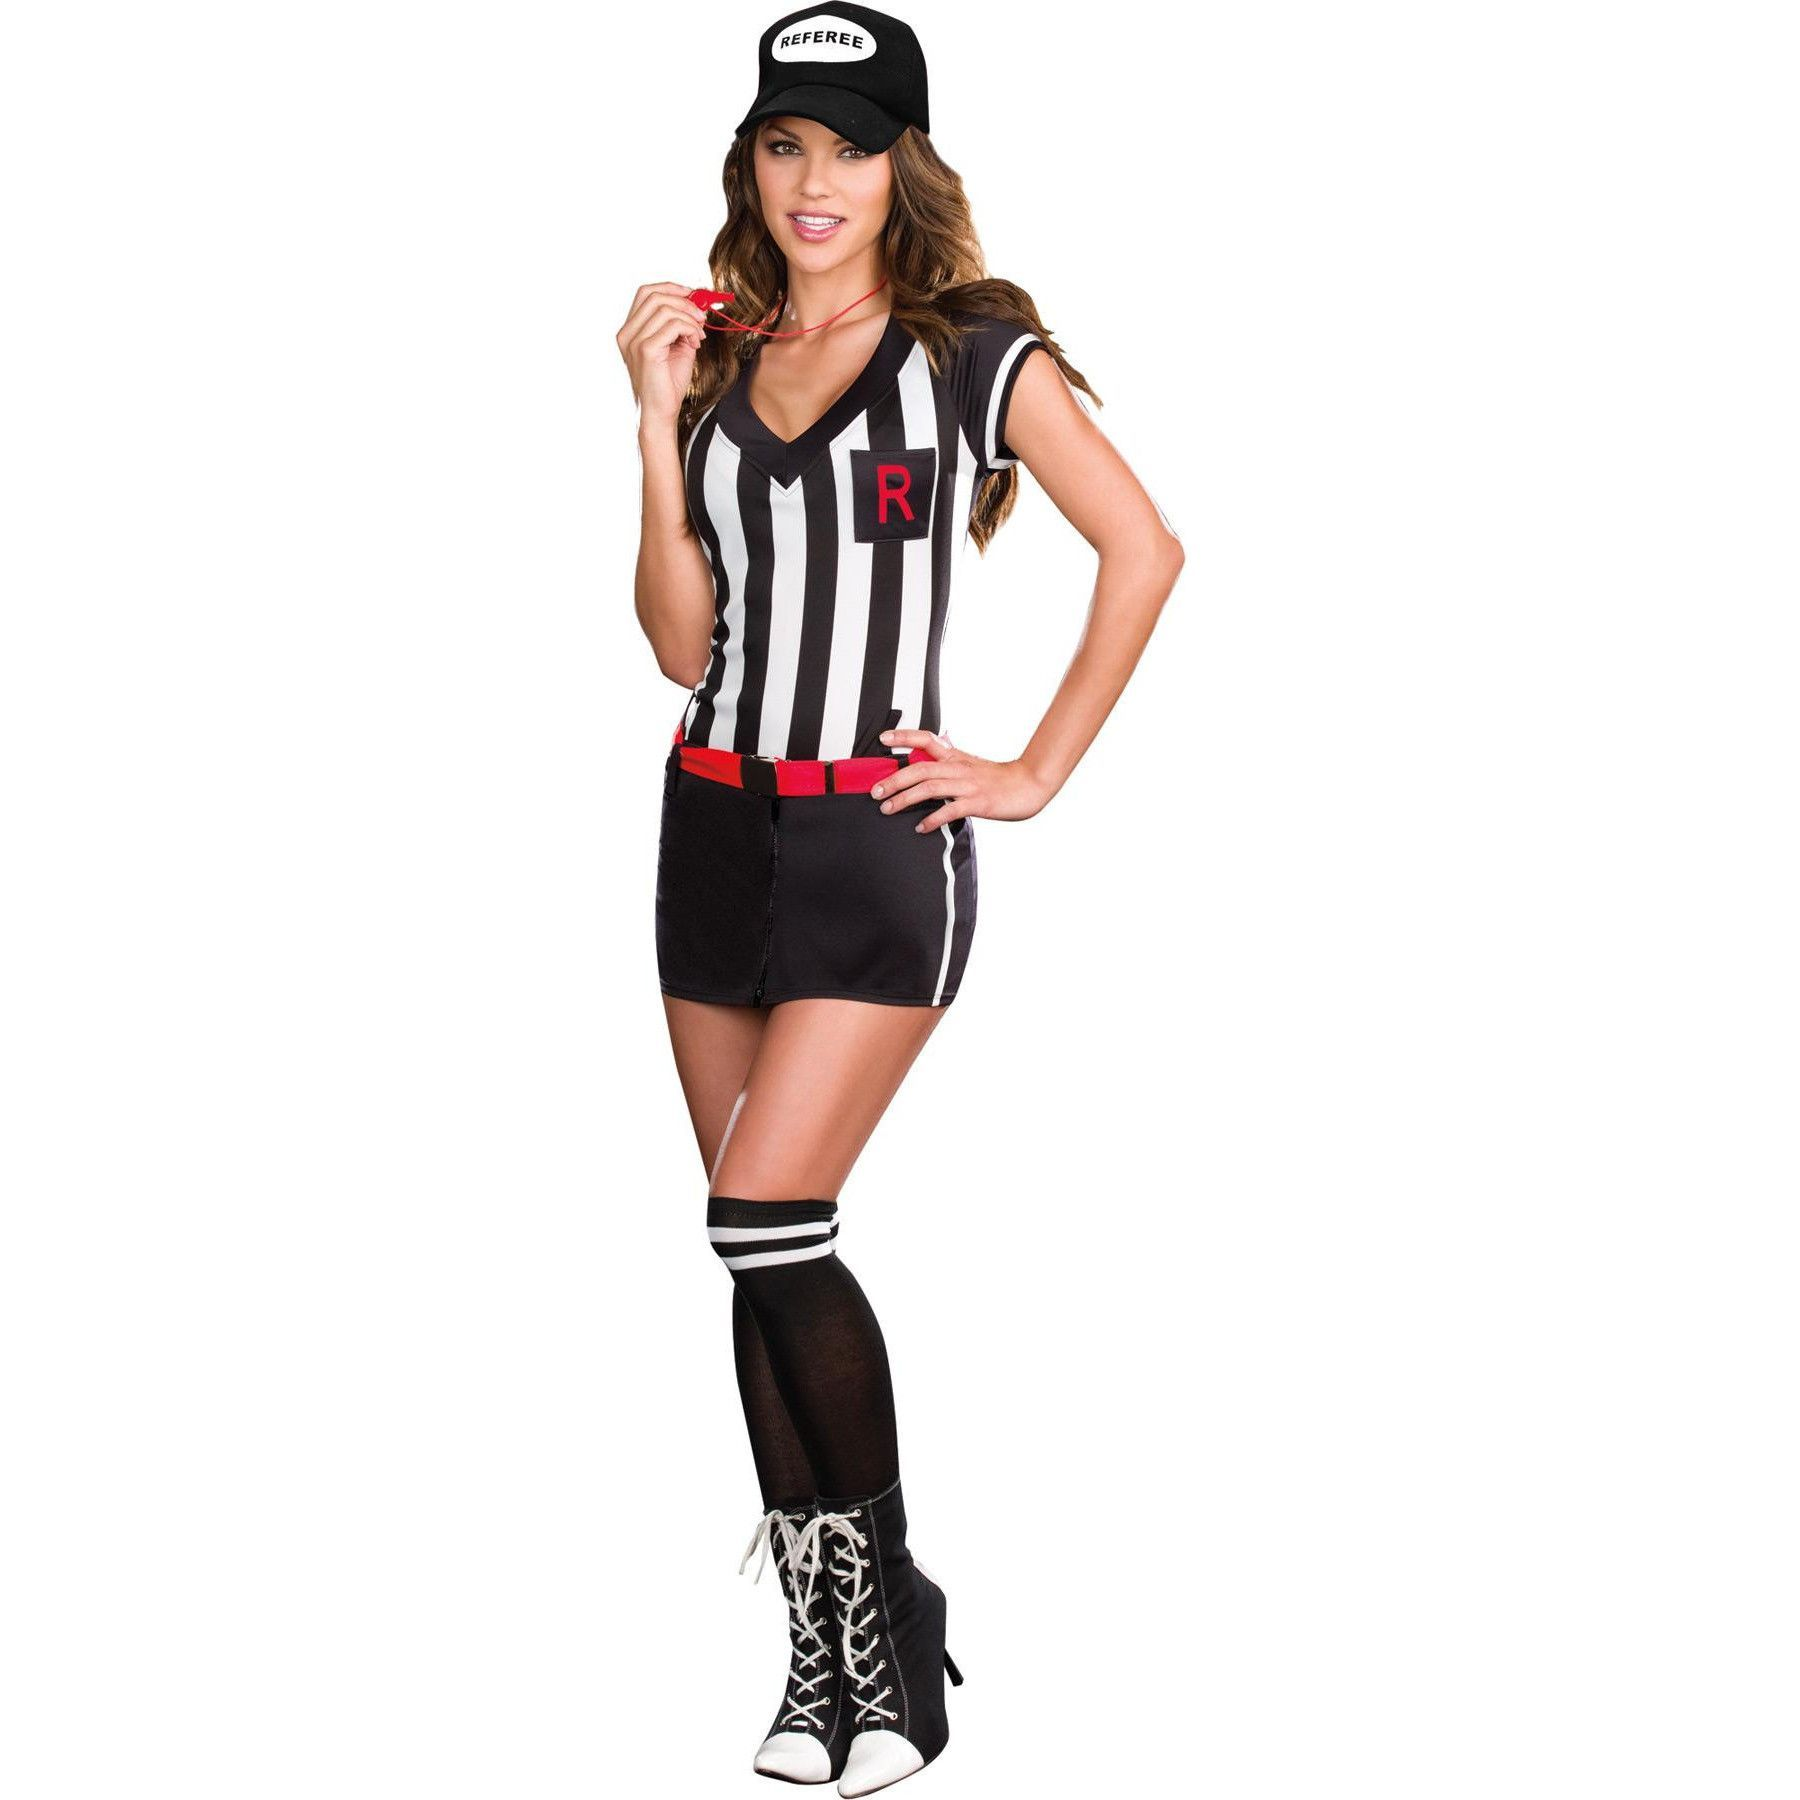 Out Of Bounds Large Referee costume, Halloween costumes